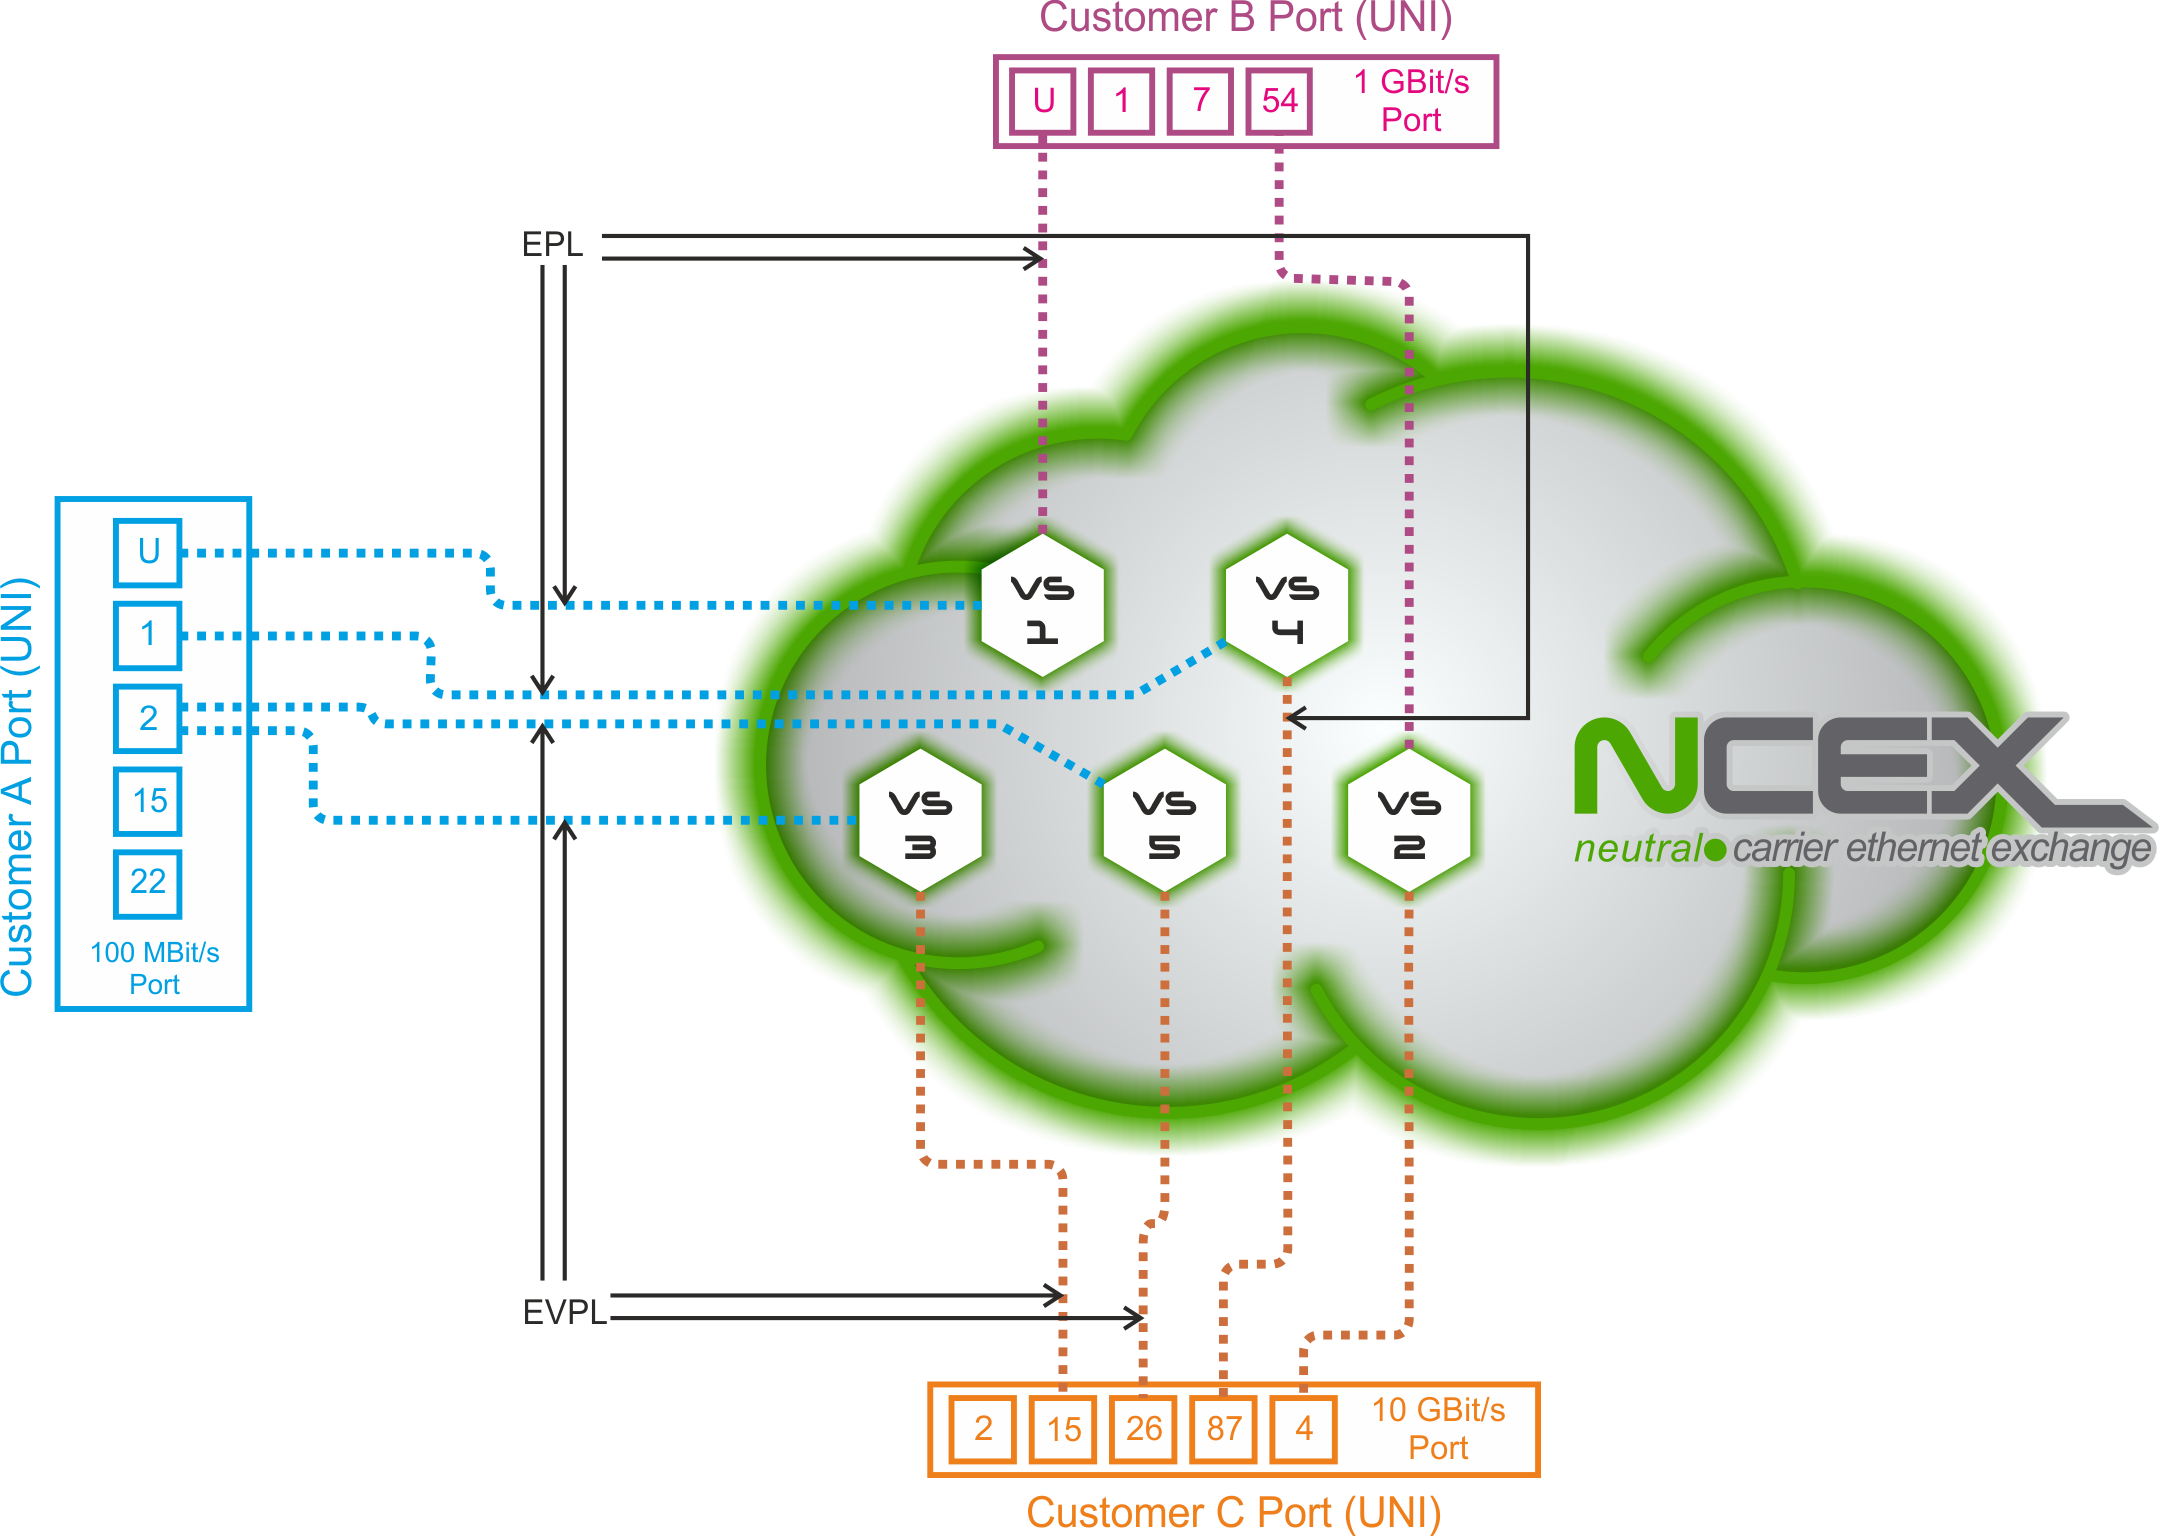 Ncex Newtelco Gmbh Connect The Series Circuit As Shown In Figure Below Using 10 Epl Strives To Provide A Service That Is Close Being Transparent Possible Cases Where Bandwidth Of Evc Connecting Two Unis